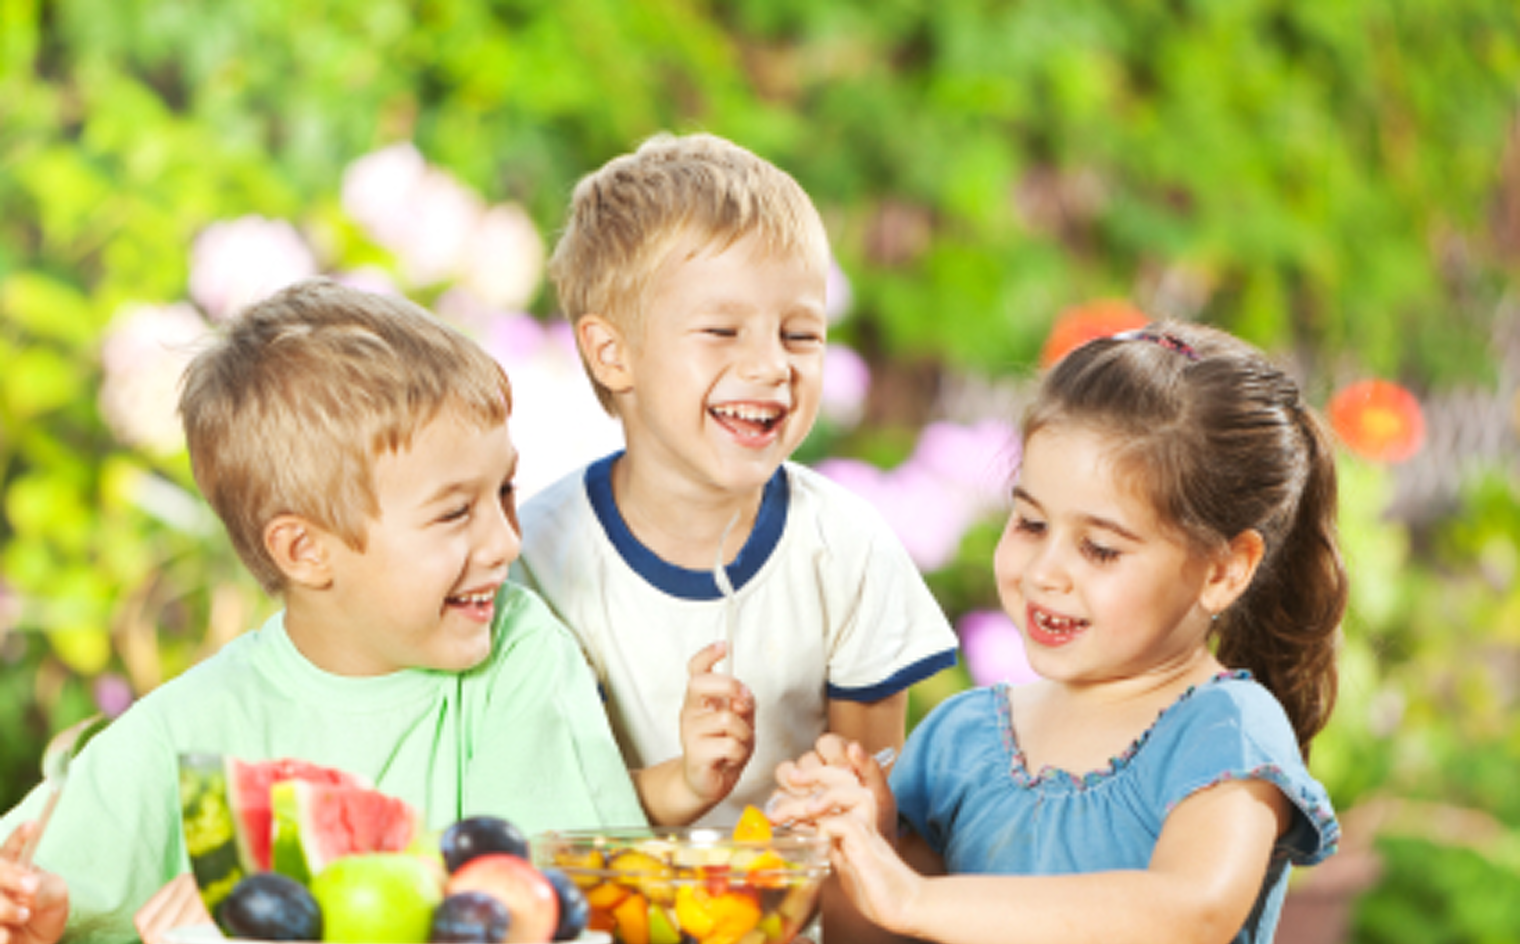 photo of 3 children eating fruits